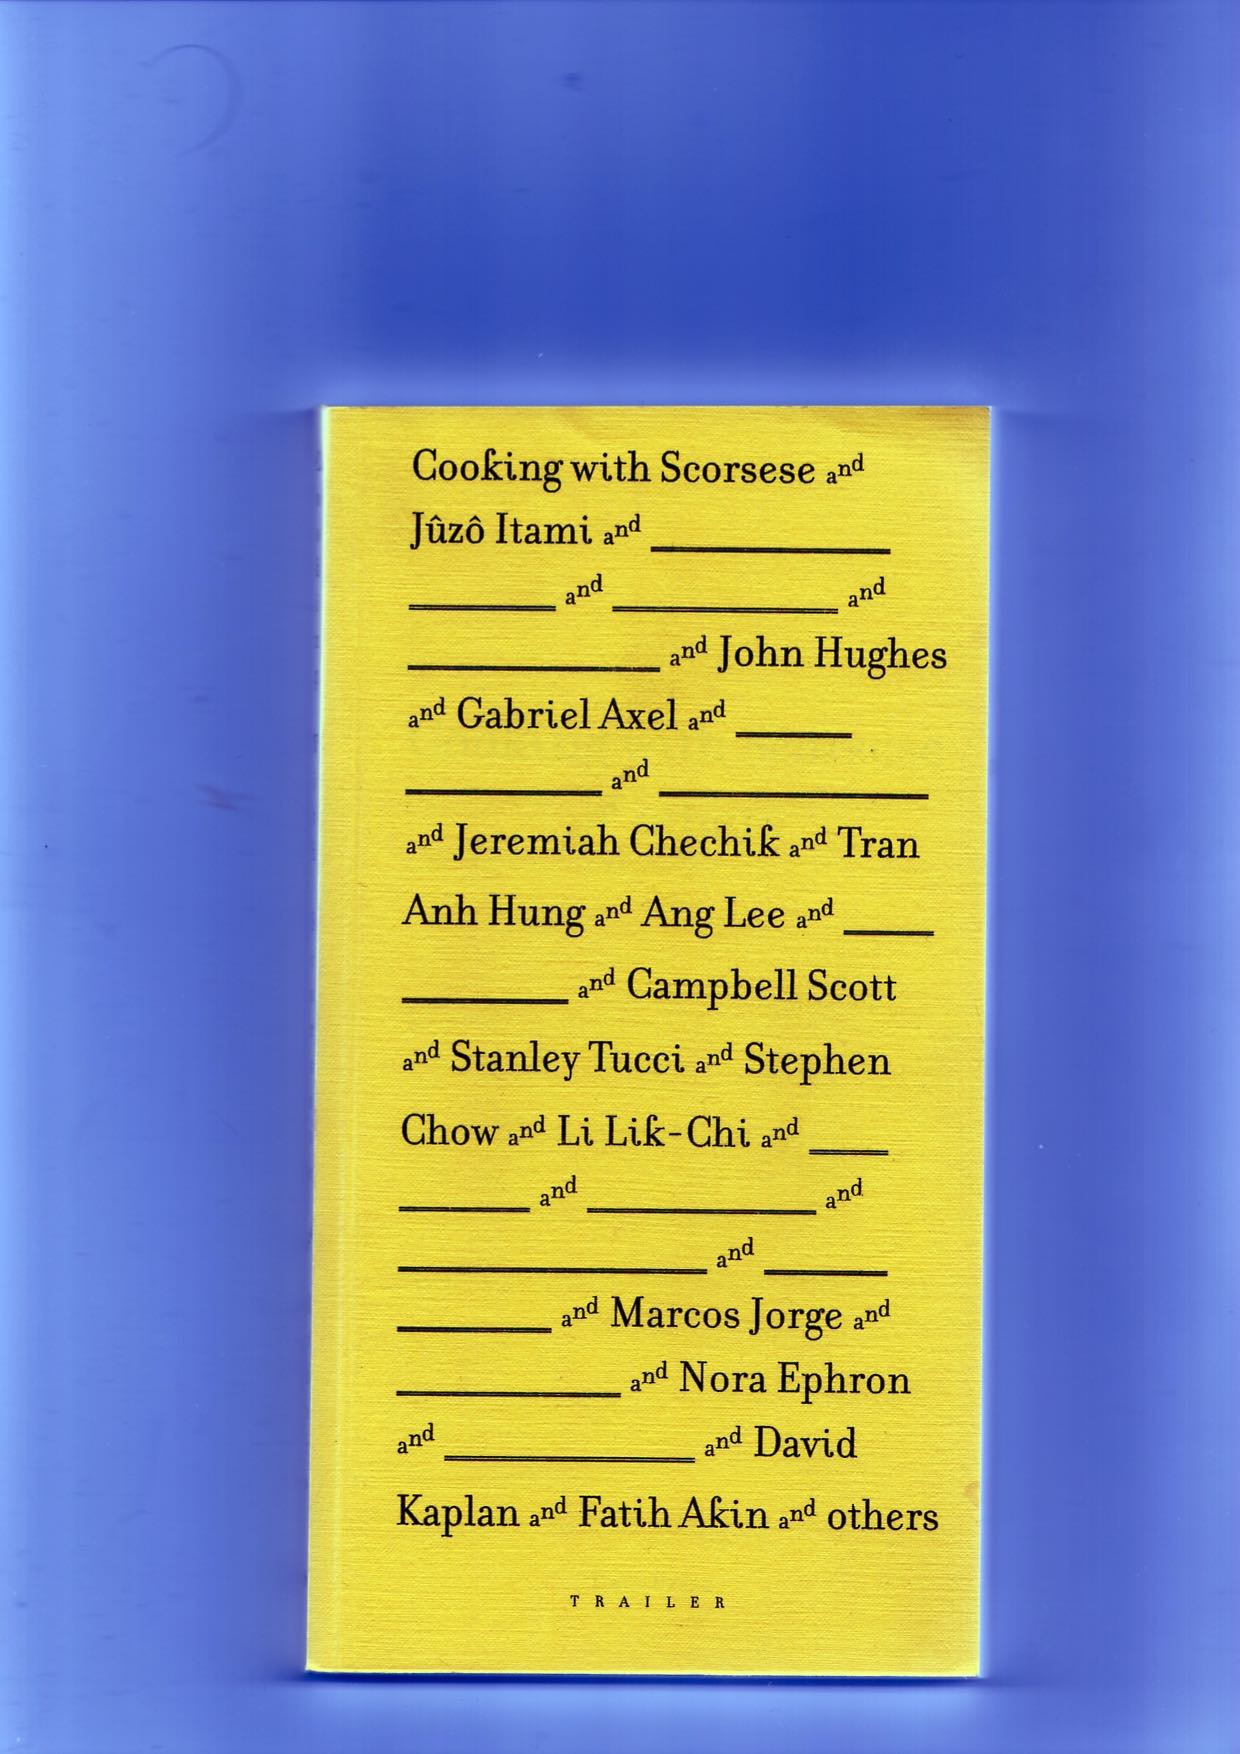 PELLERIN, Ananda (ed.) - Cooking with Scorsese and others